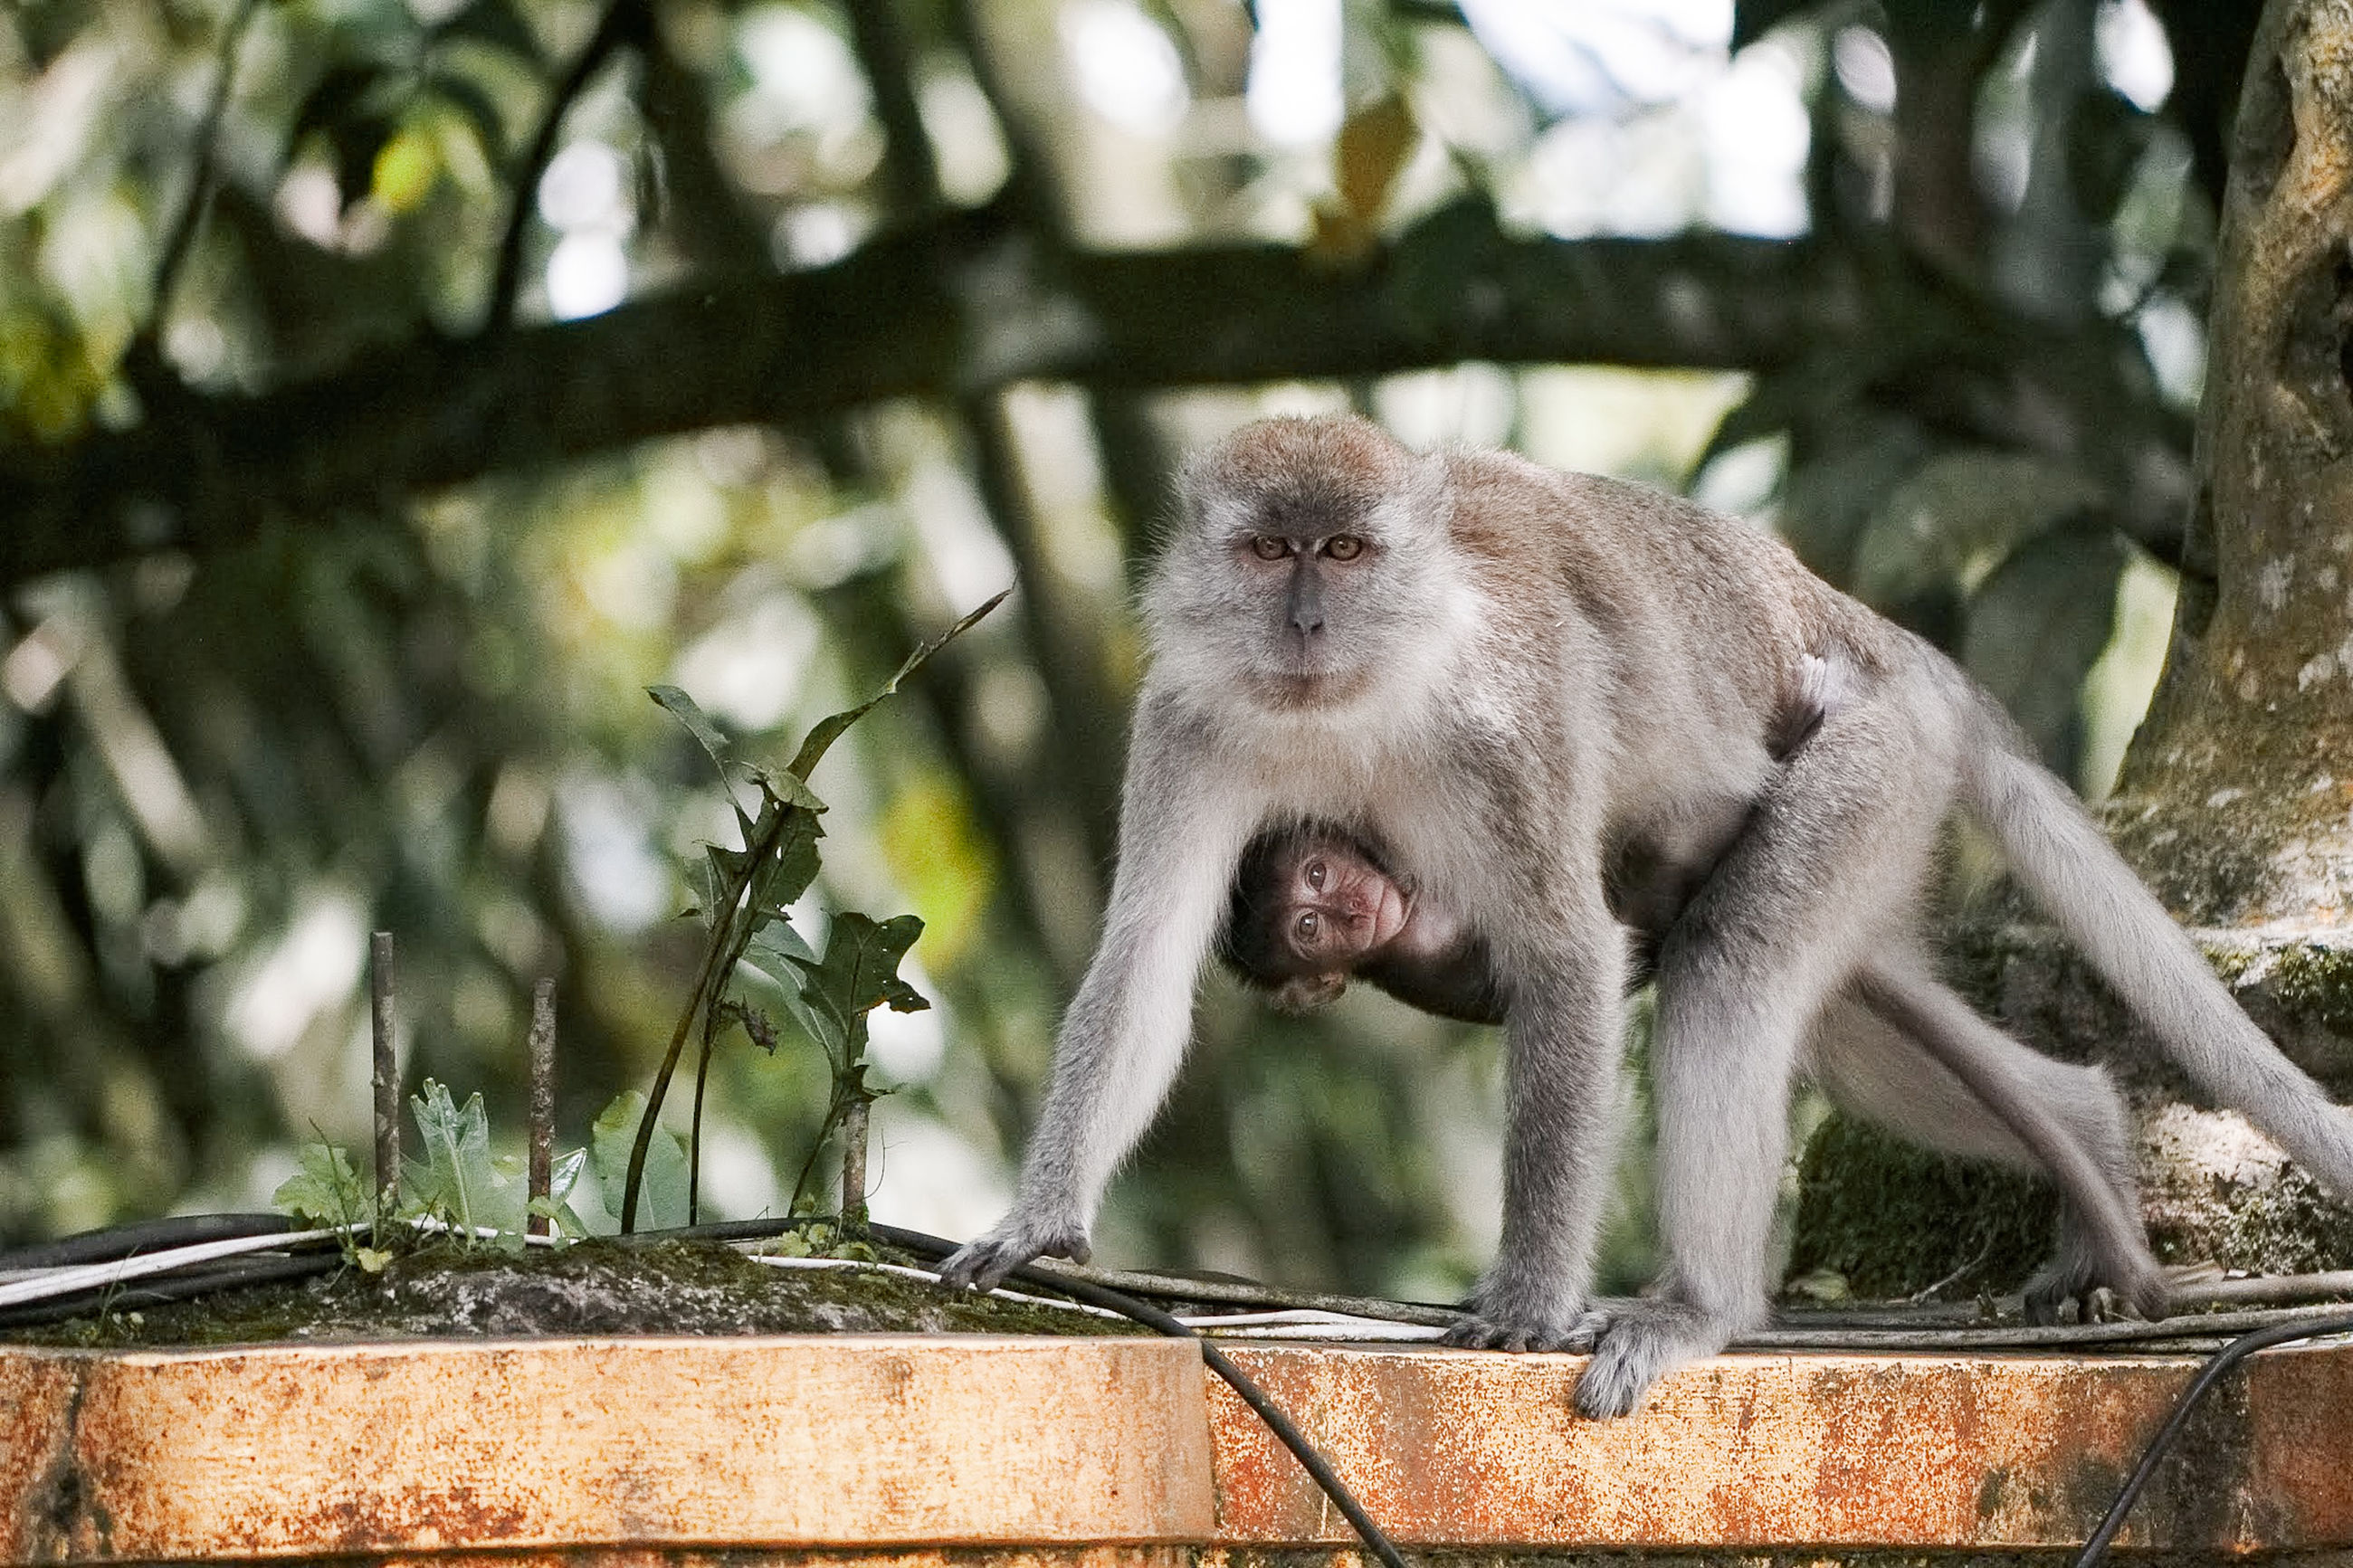 primate, mammal, animal wildlife, animals in the wild, one animal, vertebrate, tree, day, focus on foreground, plant, no people, nature, outdoors, sitting, zoology, looking